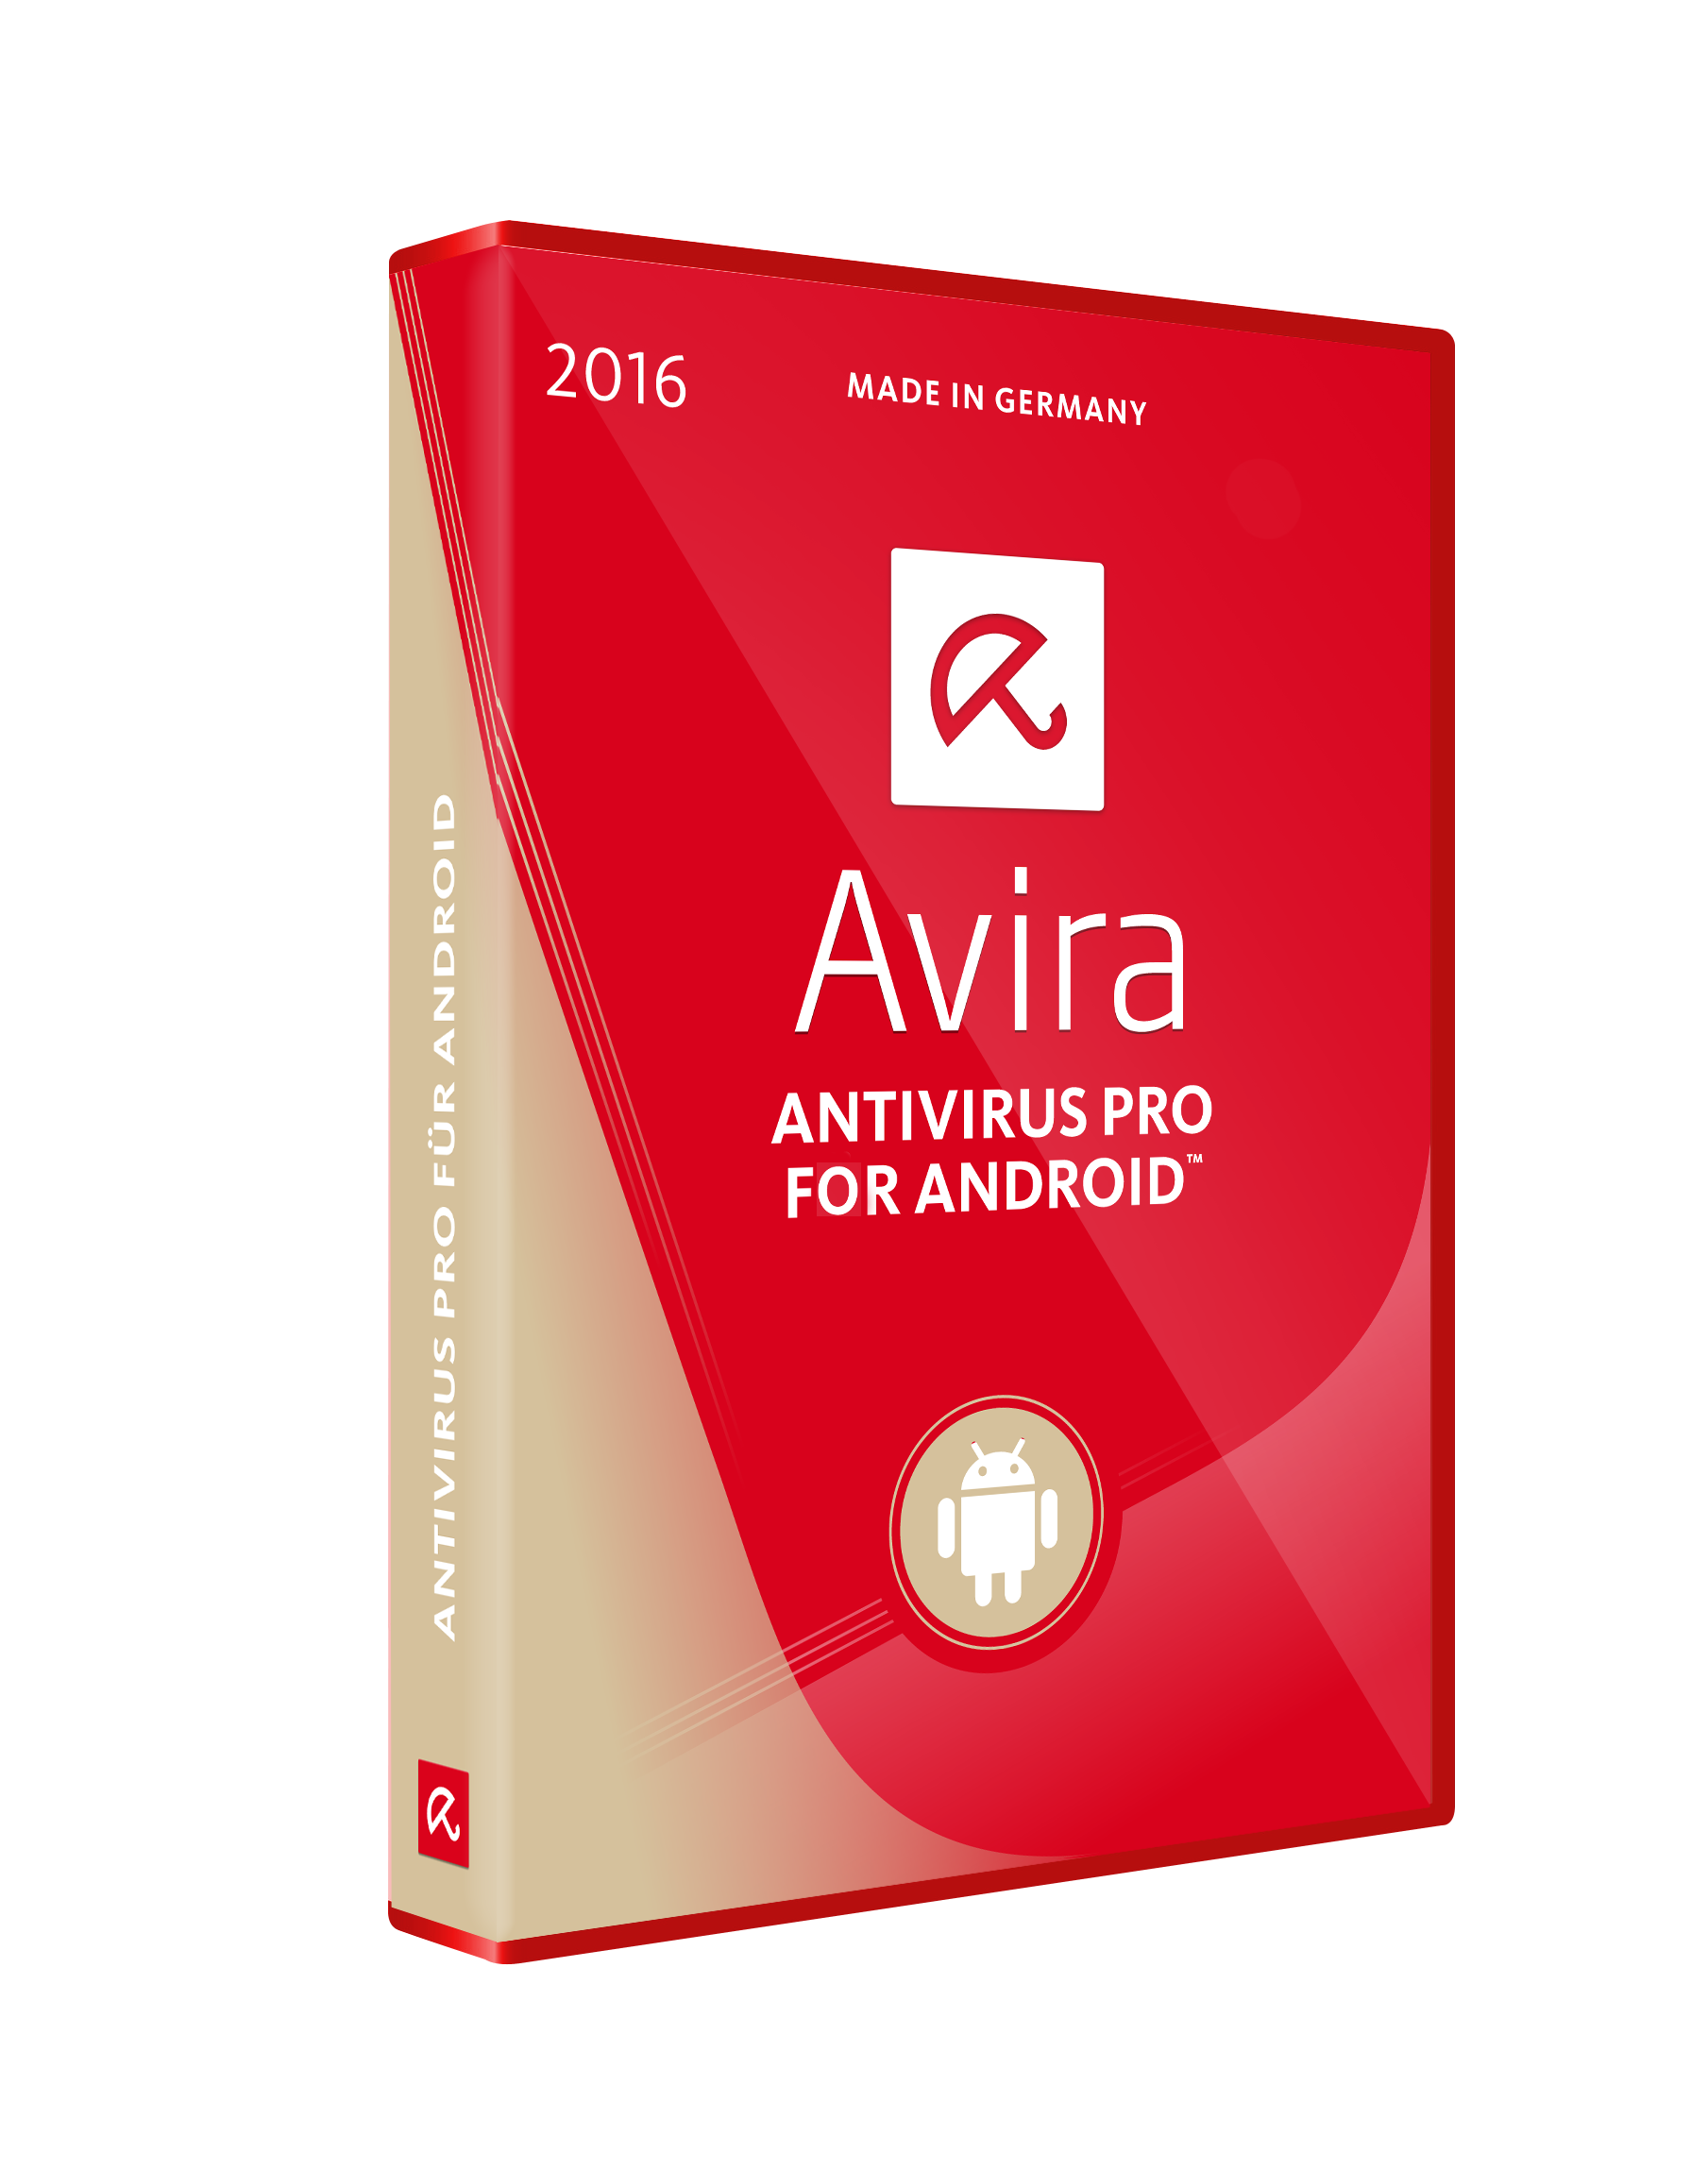 AVIRA ANTIVIRUS SECURITY /Android/